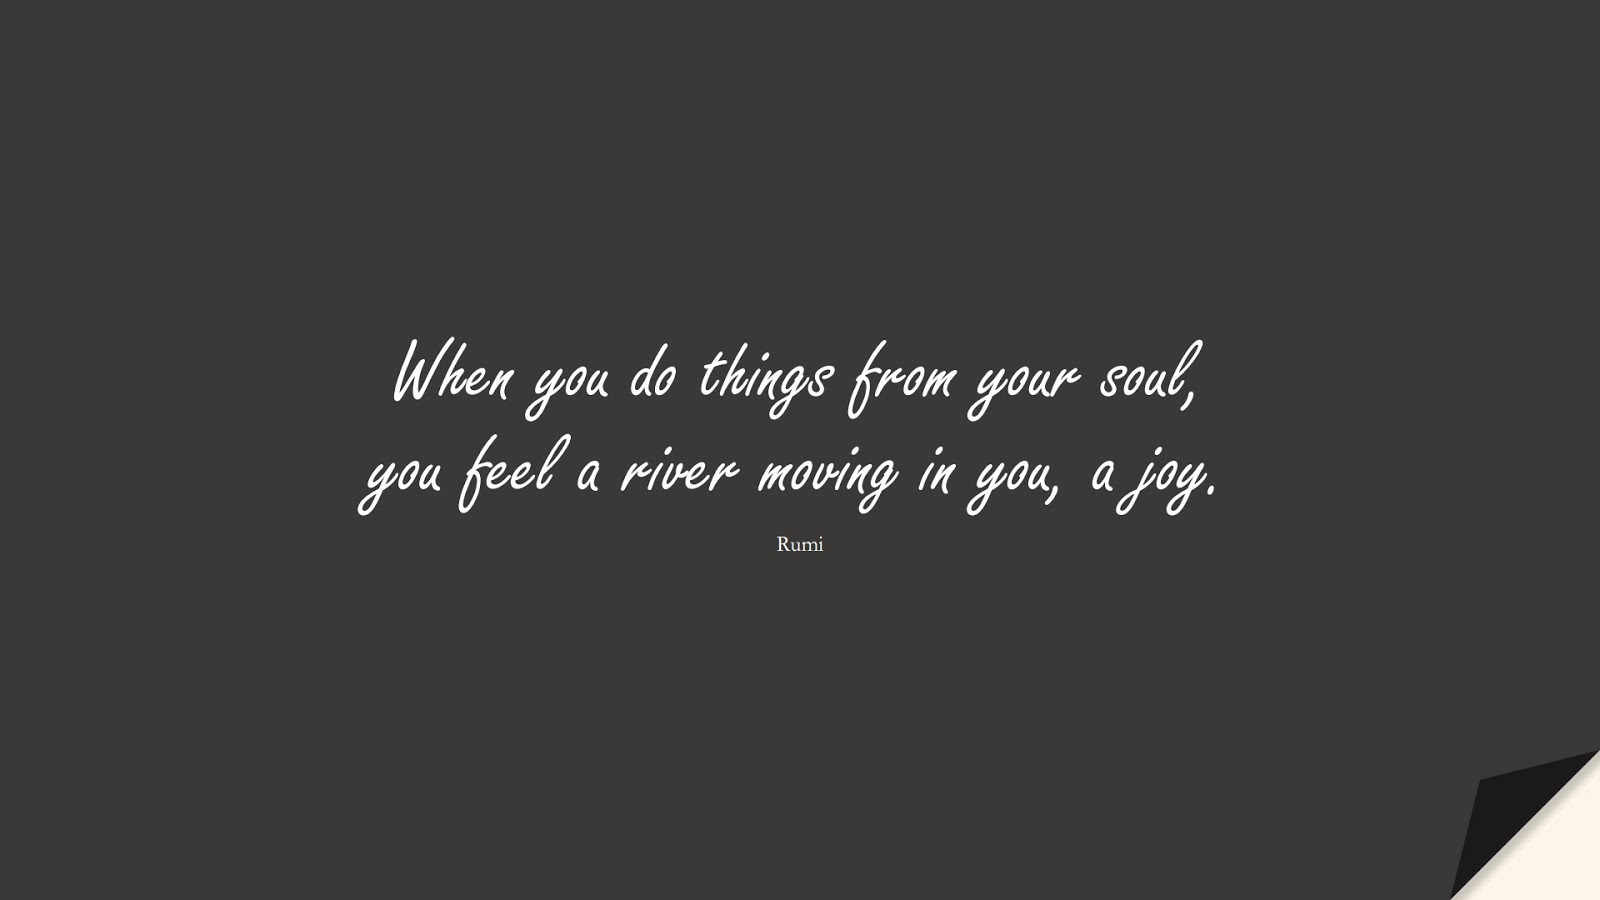 When you do things from your soul, you feel a river moving in you, a joy. (Rumi);  #ShortQuotes